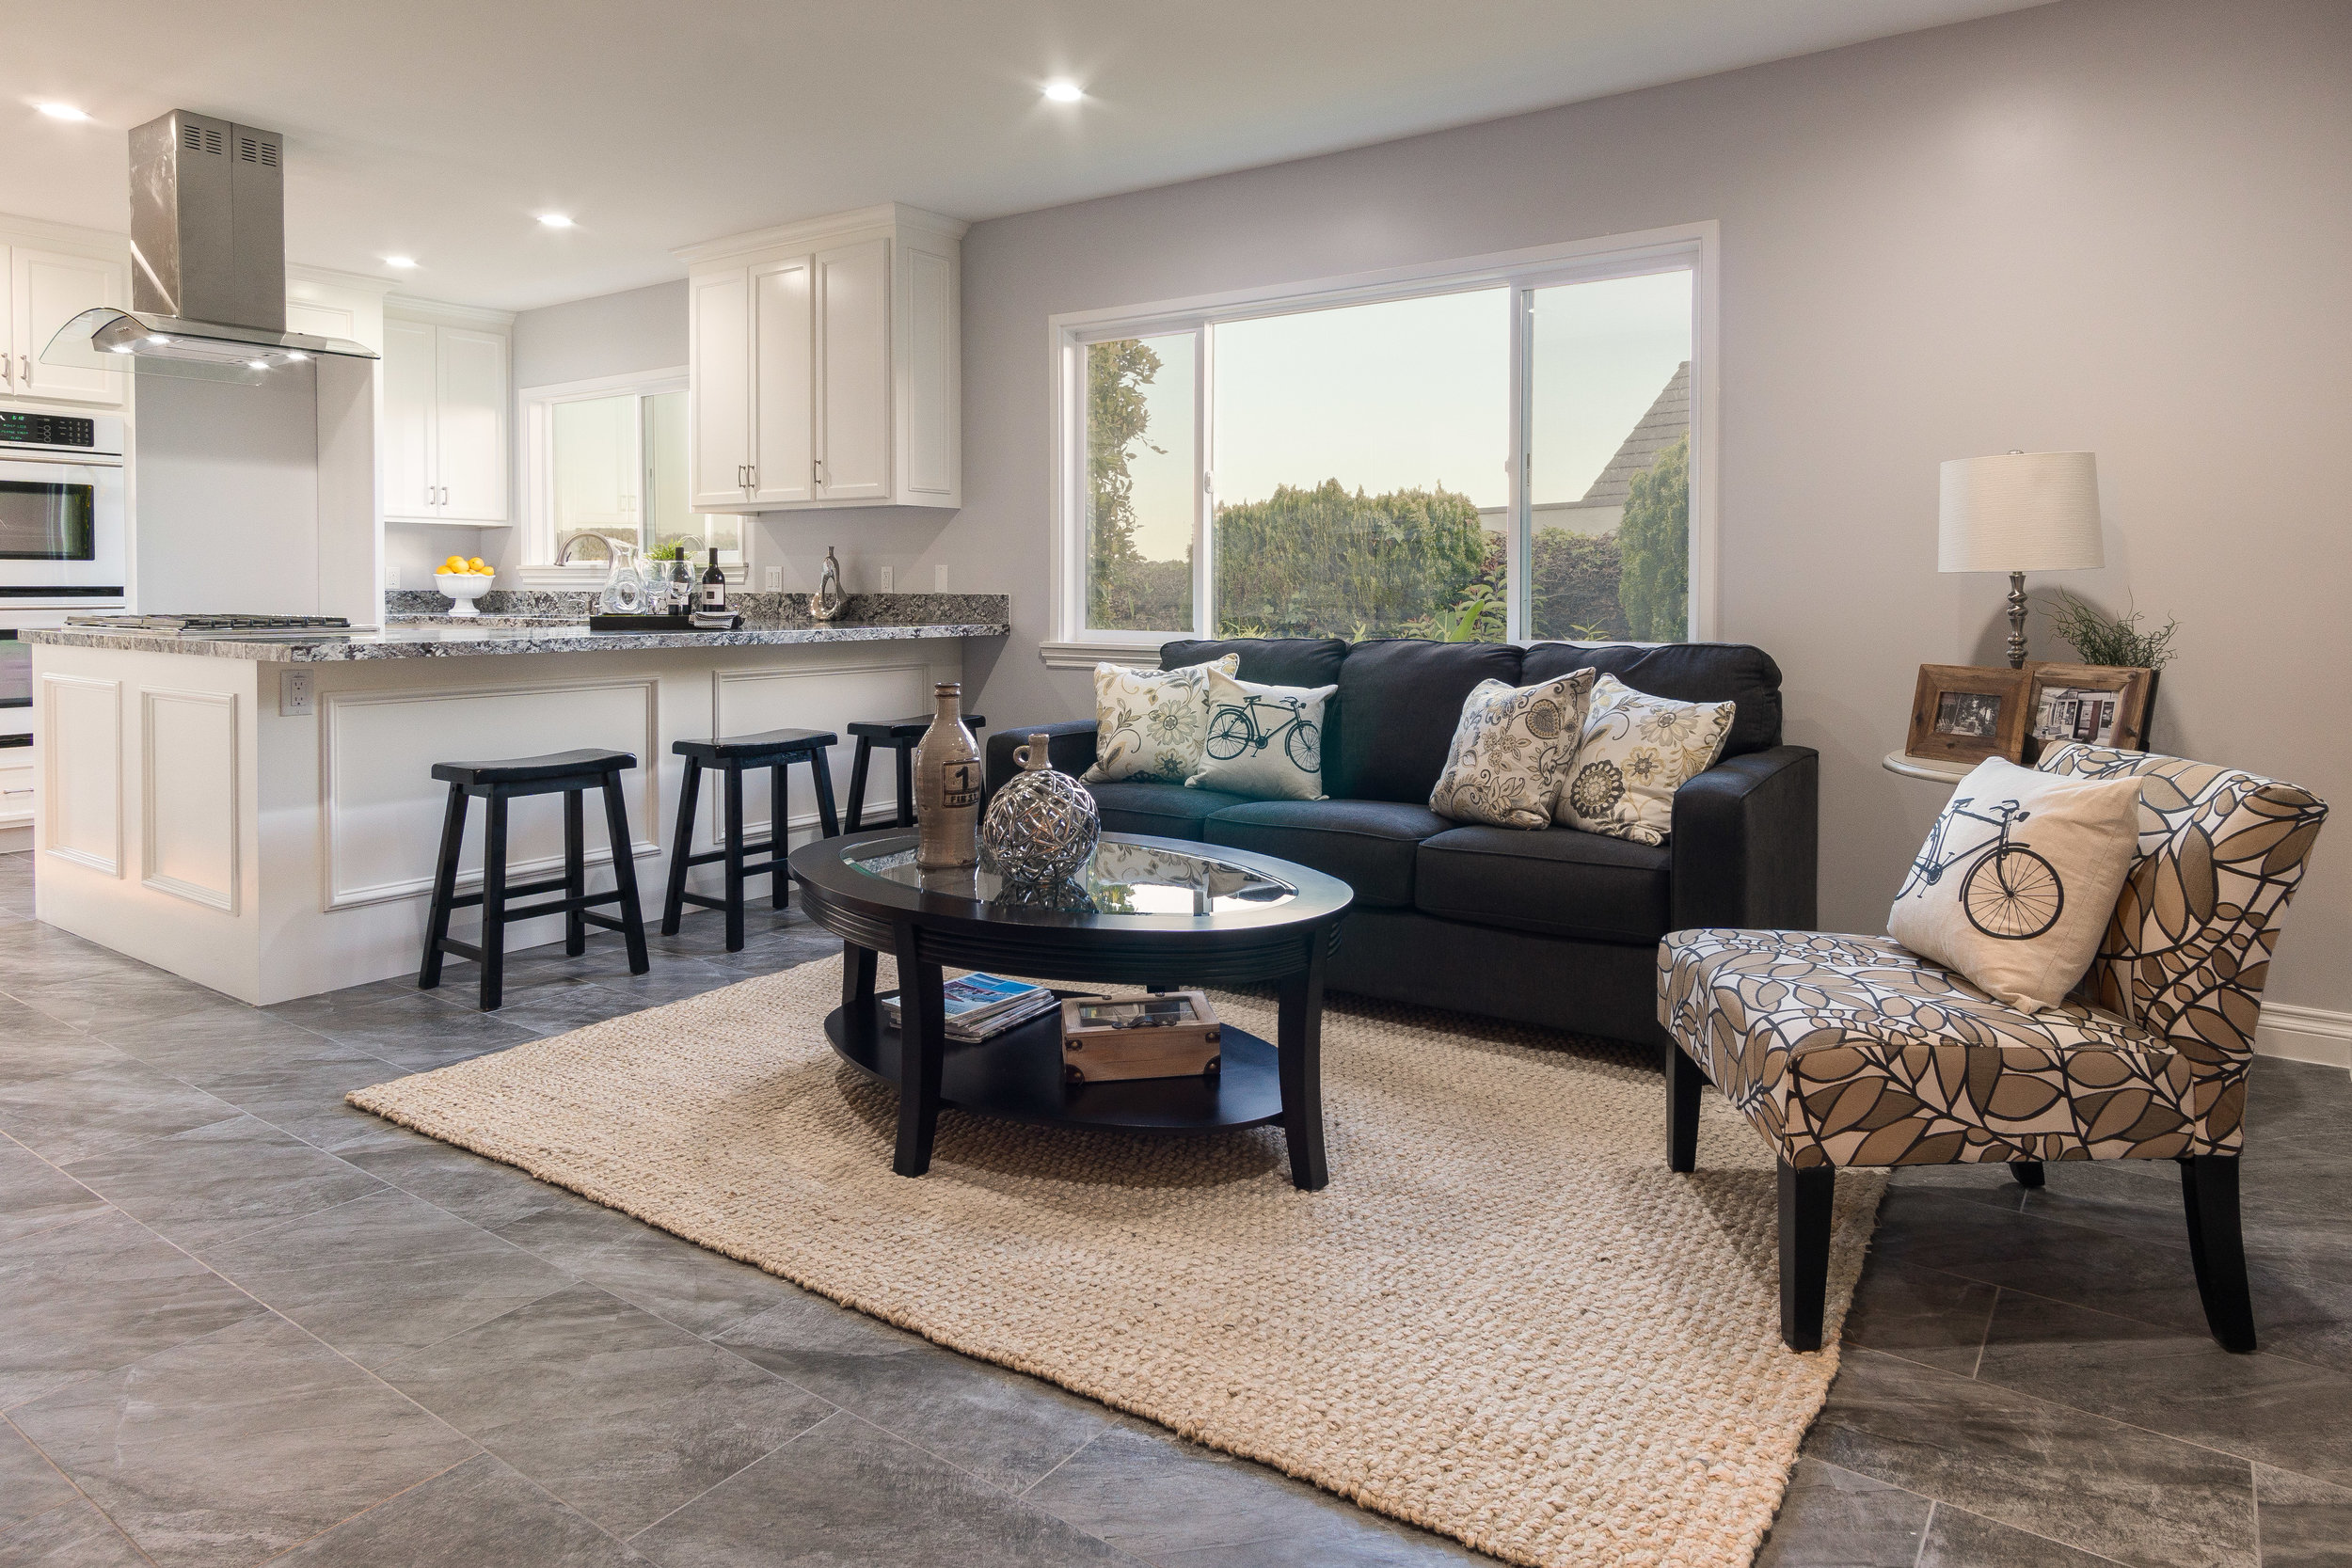 Delivered photo of the kitchen and sitting area ©Ryan Carr - Legacy Listing Photography - 2017